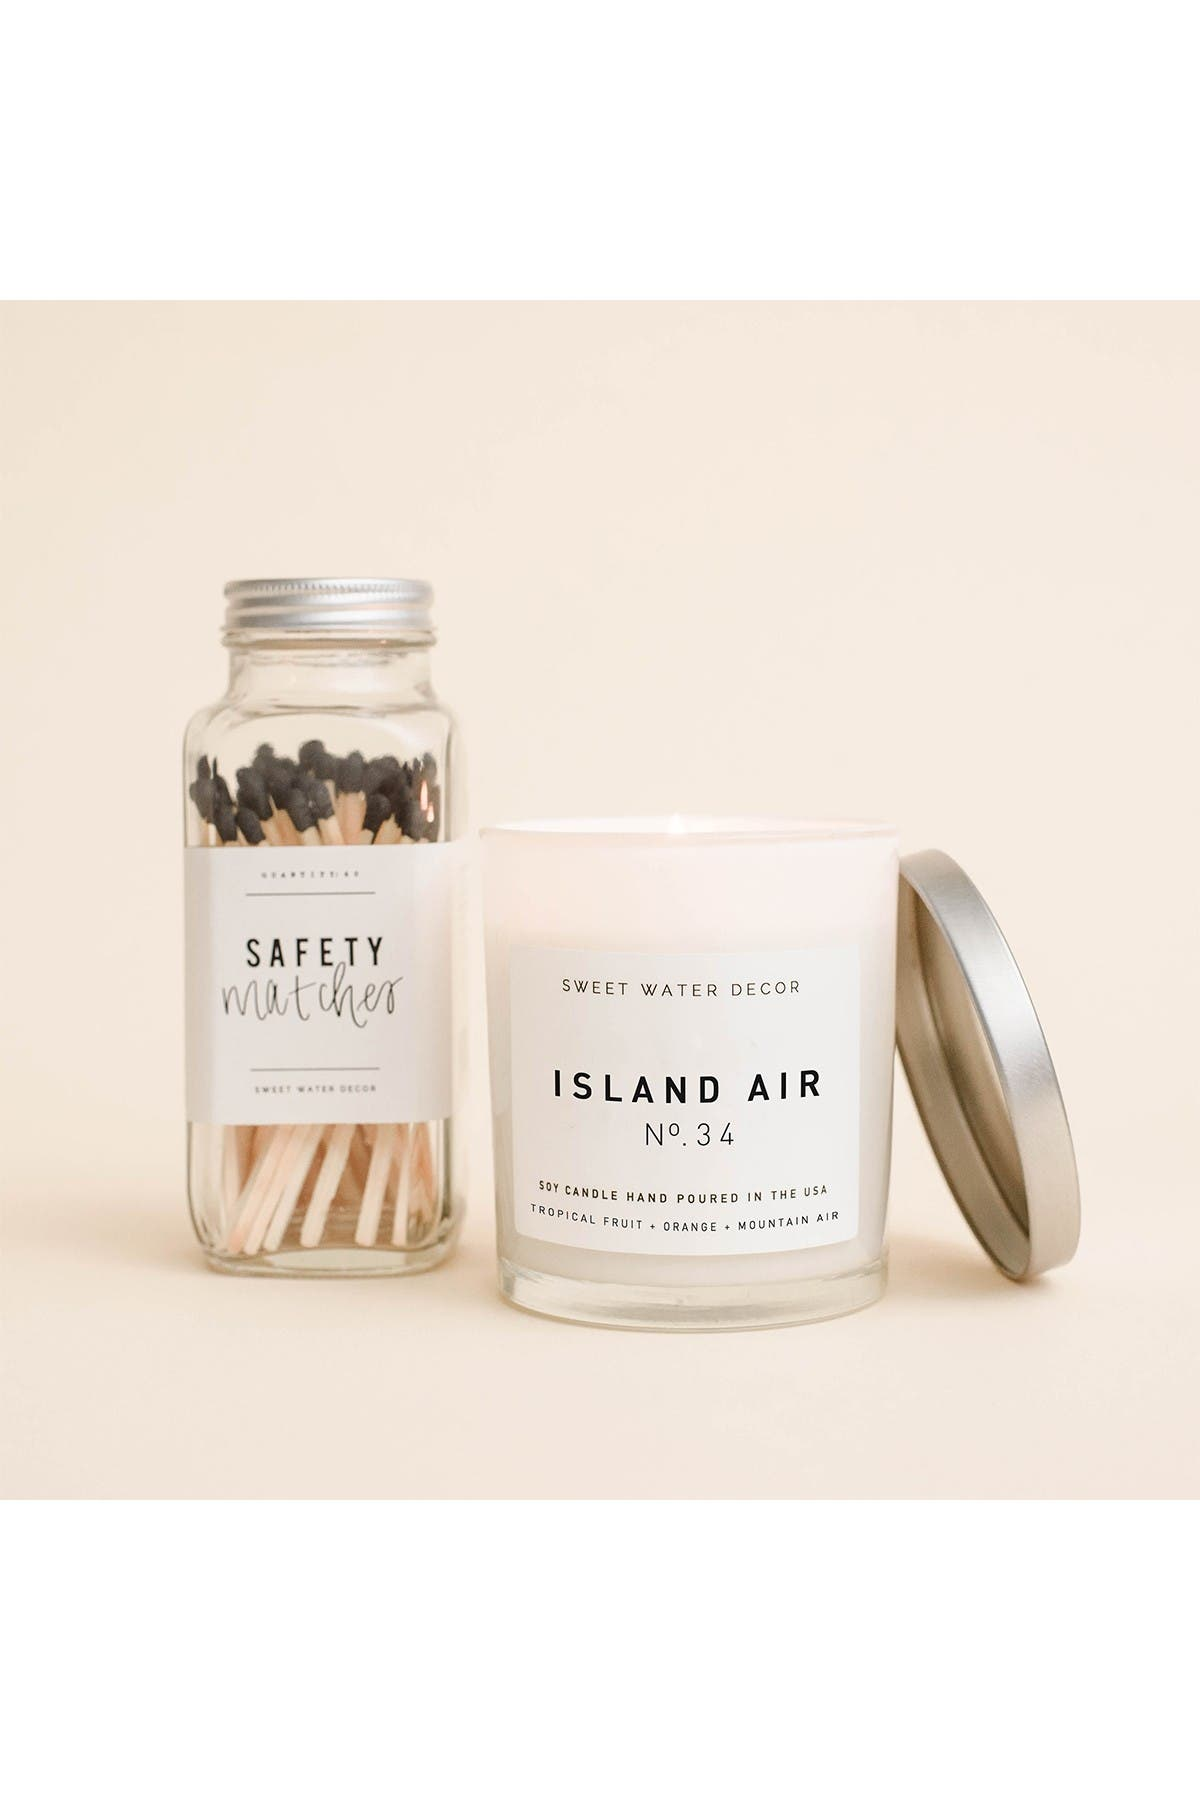 Image of SWEET WATER DECOR Island Air 11 oz. Soy Jar Candle - Set of 2